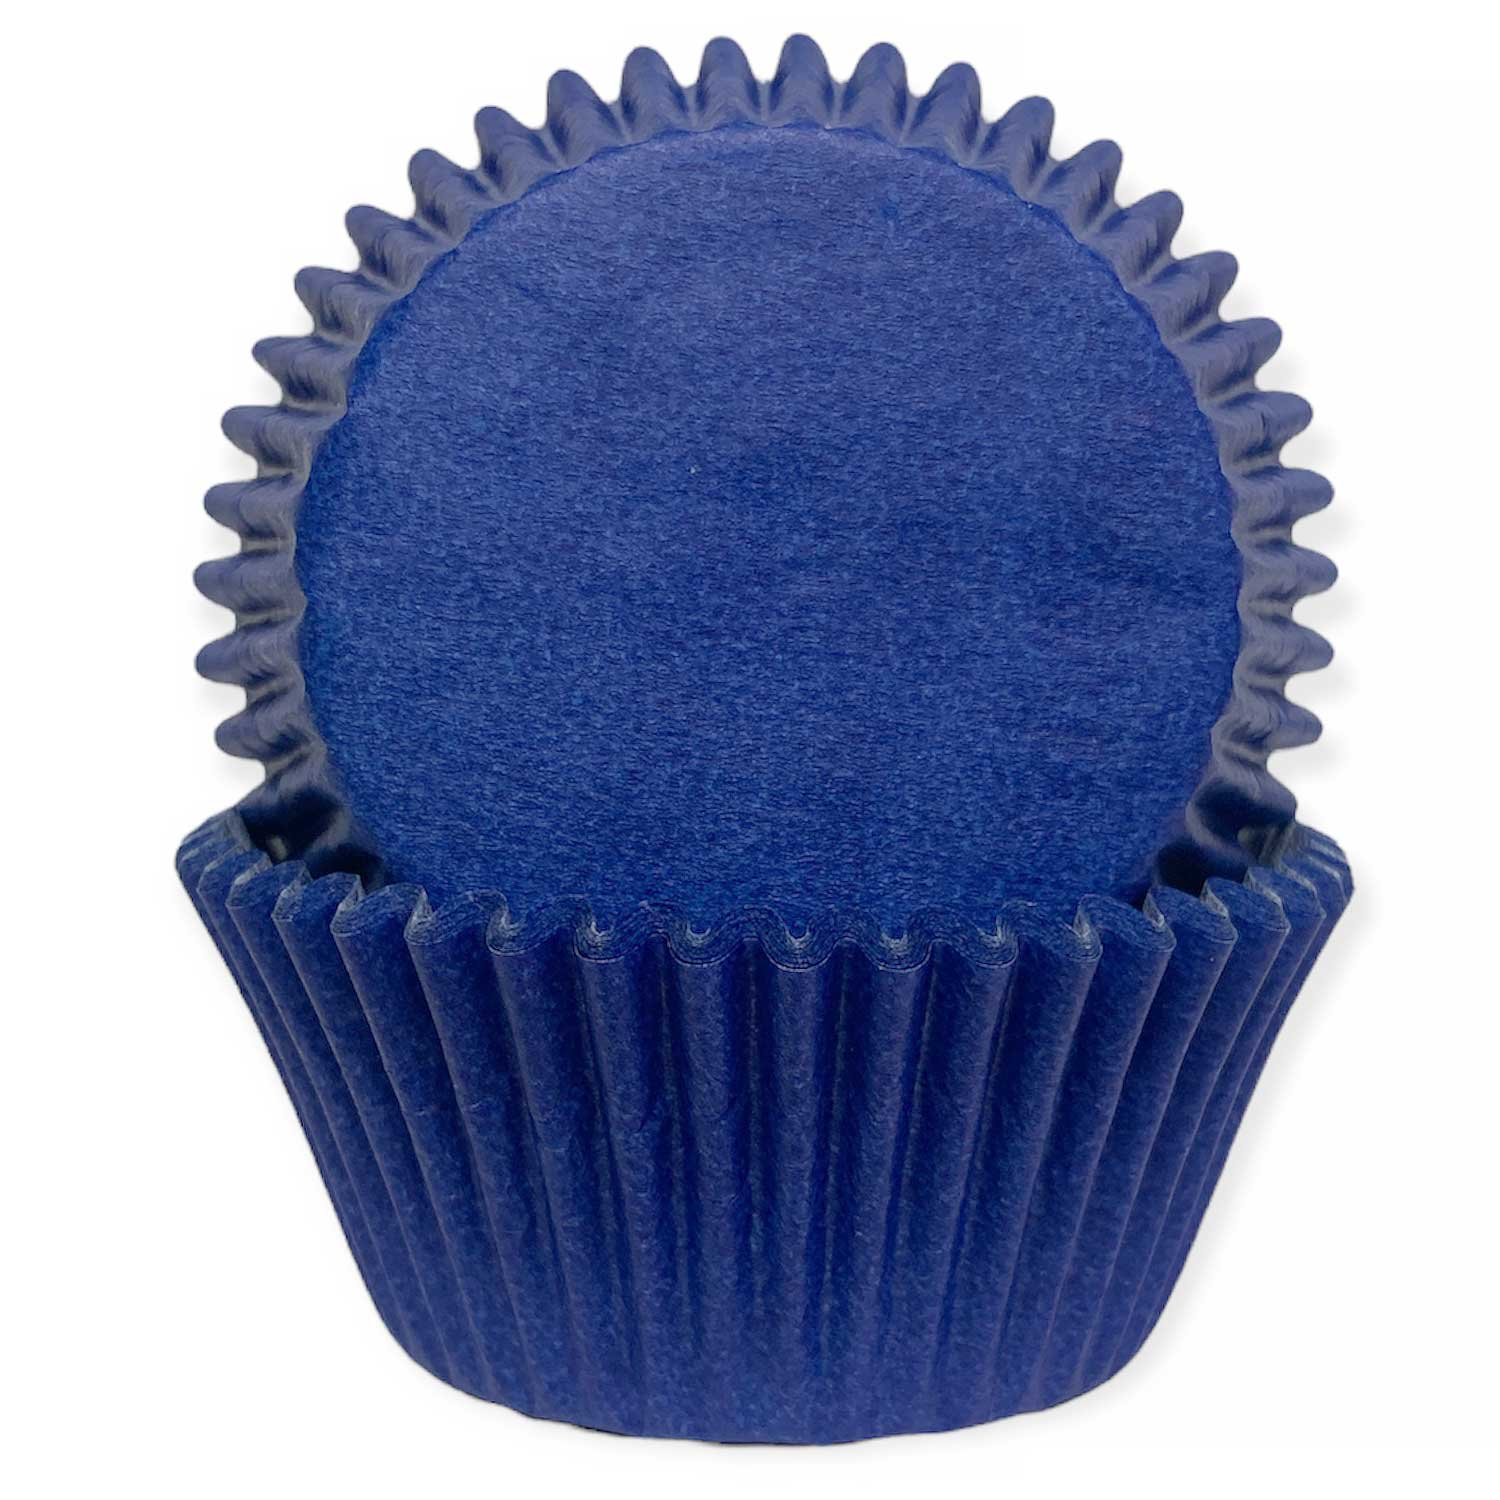 Solid Blue Standard Baking Cups